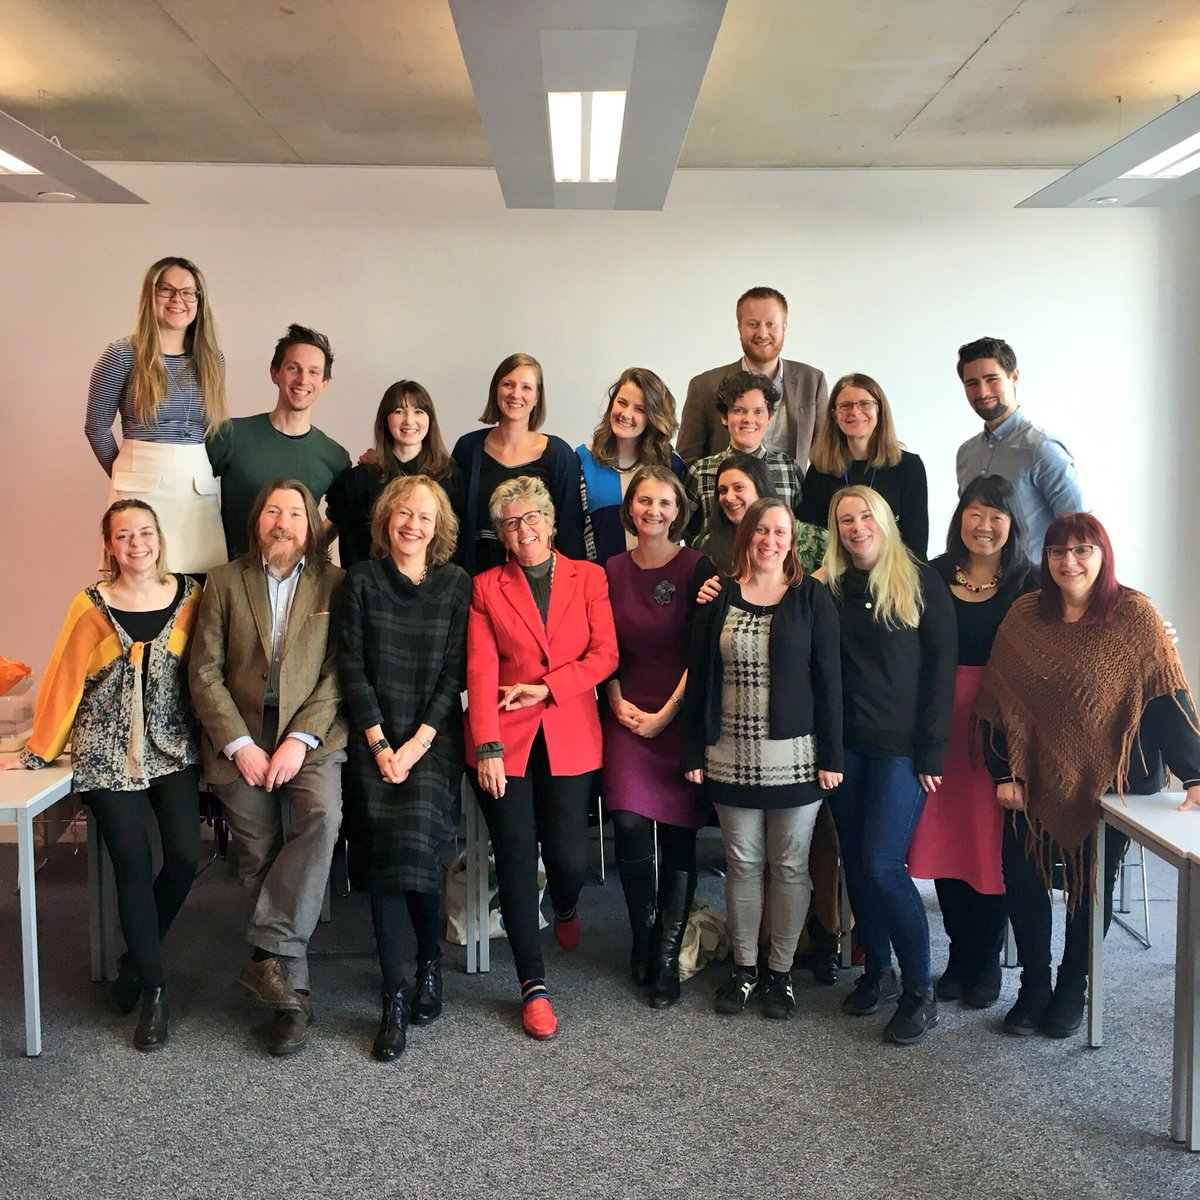 Great to spend the day with @QMUniversity Chancellor @PrueLeith talking about #foodcommunication and #foodeducation with the @QMUGastronomy students. #StudyFood #Gastronomy